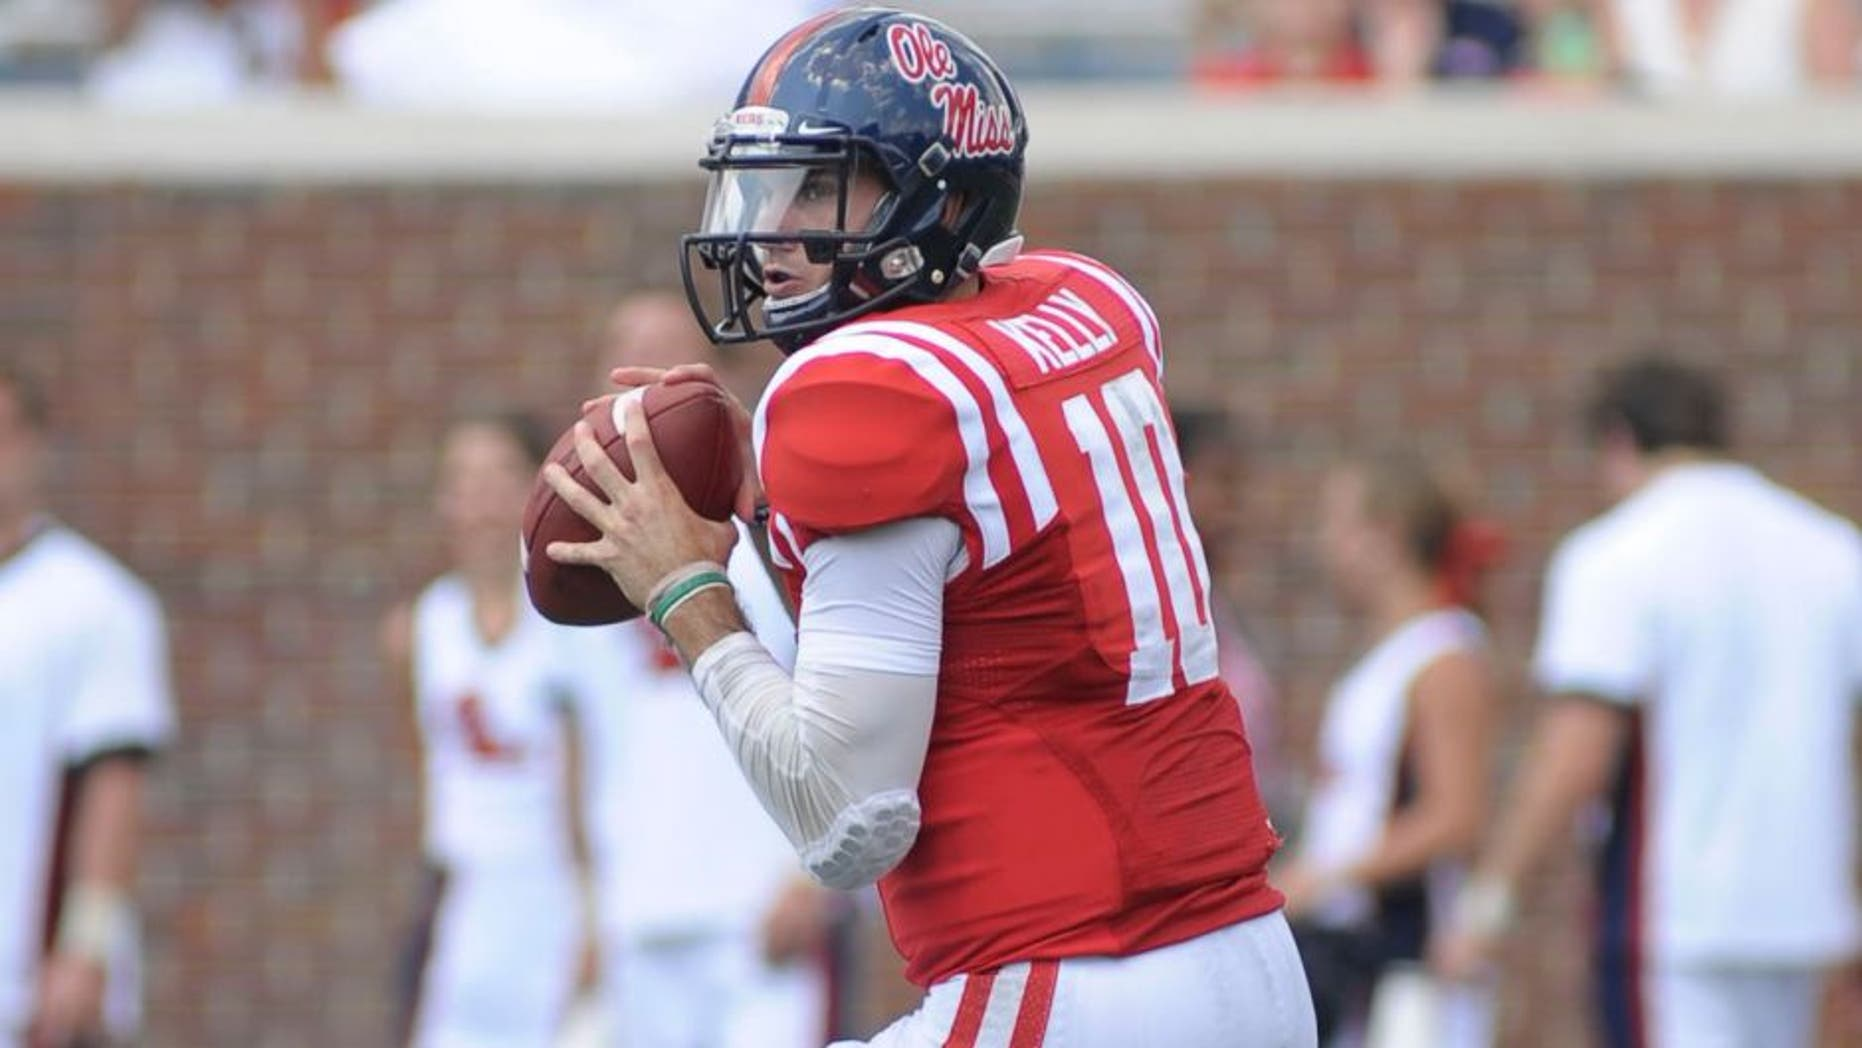 Sep 5, 2015; Oxford, MS, USA; Mississippi Rebels quarterback Chad Kelly (10) looks to pass the ball during the game against the Tennessee Martin Skyhawks at Vaught-Hemingway Stadium. The Rebels won 76 - 3.Mandatory Credit: Justin Ford-USA TODAY Sports